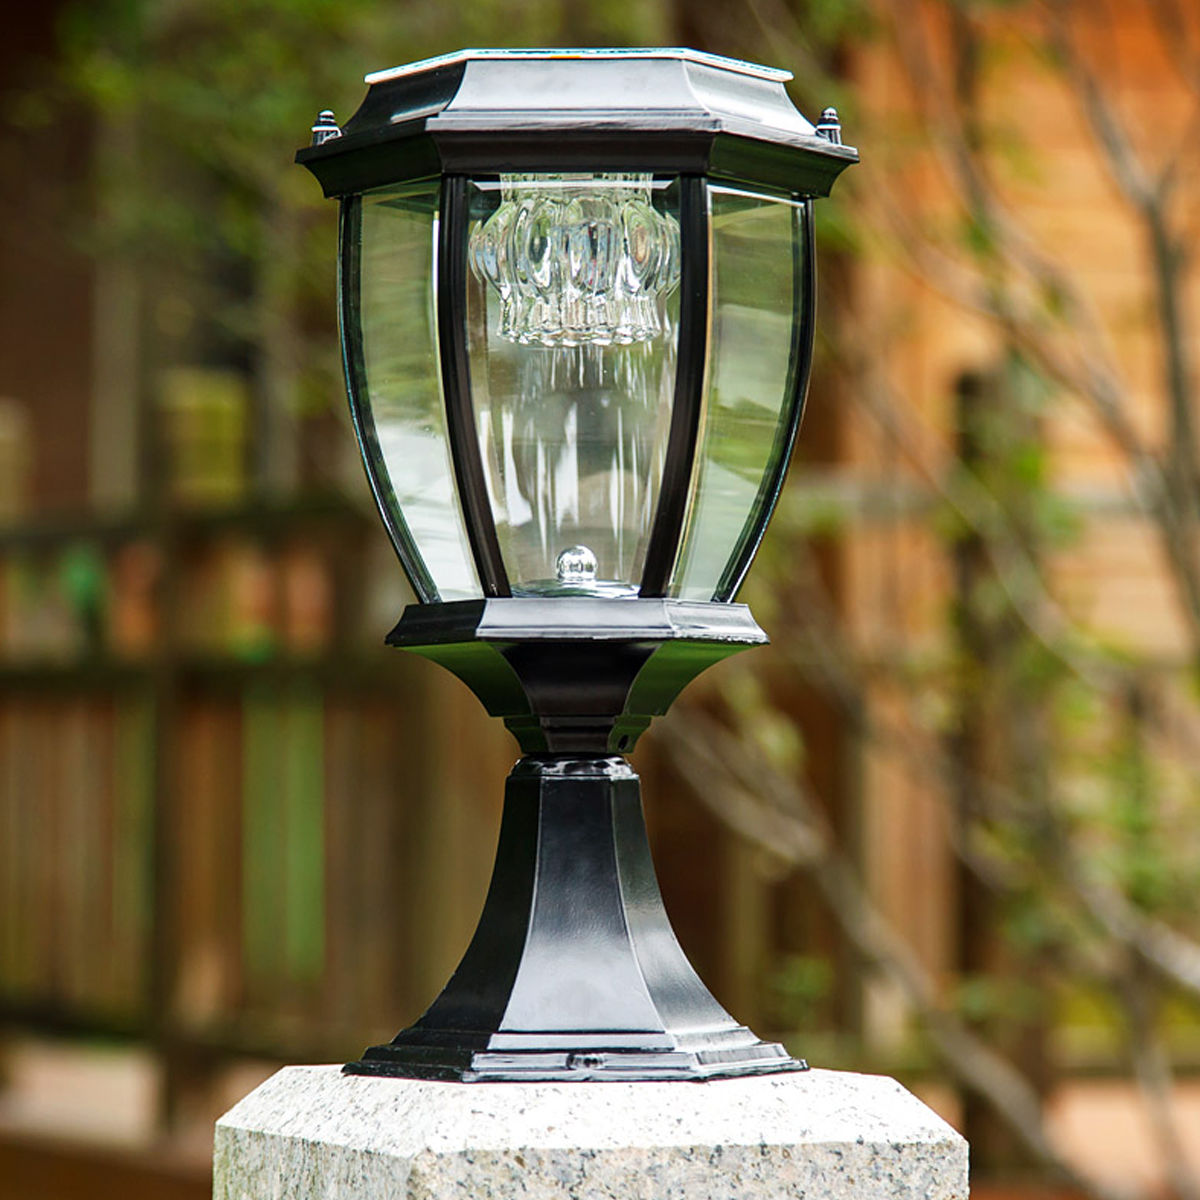 4 Foot Outdoor Solar Powered Lamp Post With: Outdoor Solar Power LED Garden Yard Pillar Light Post